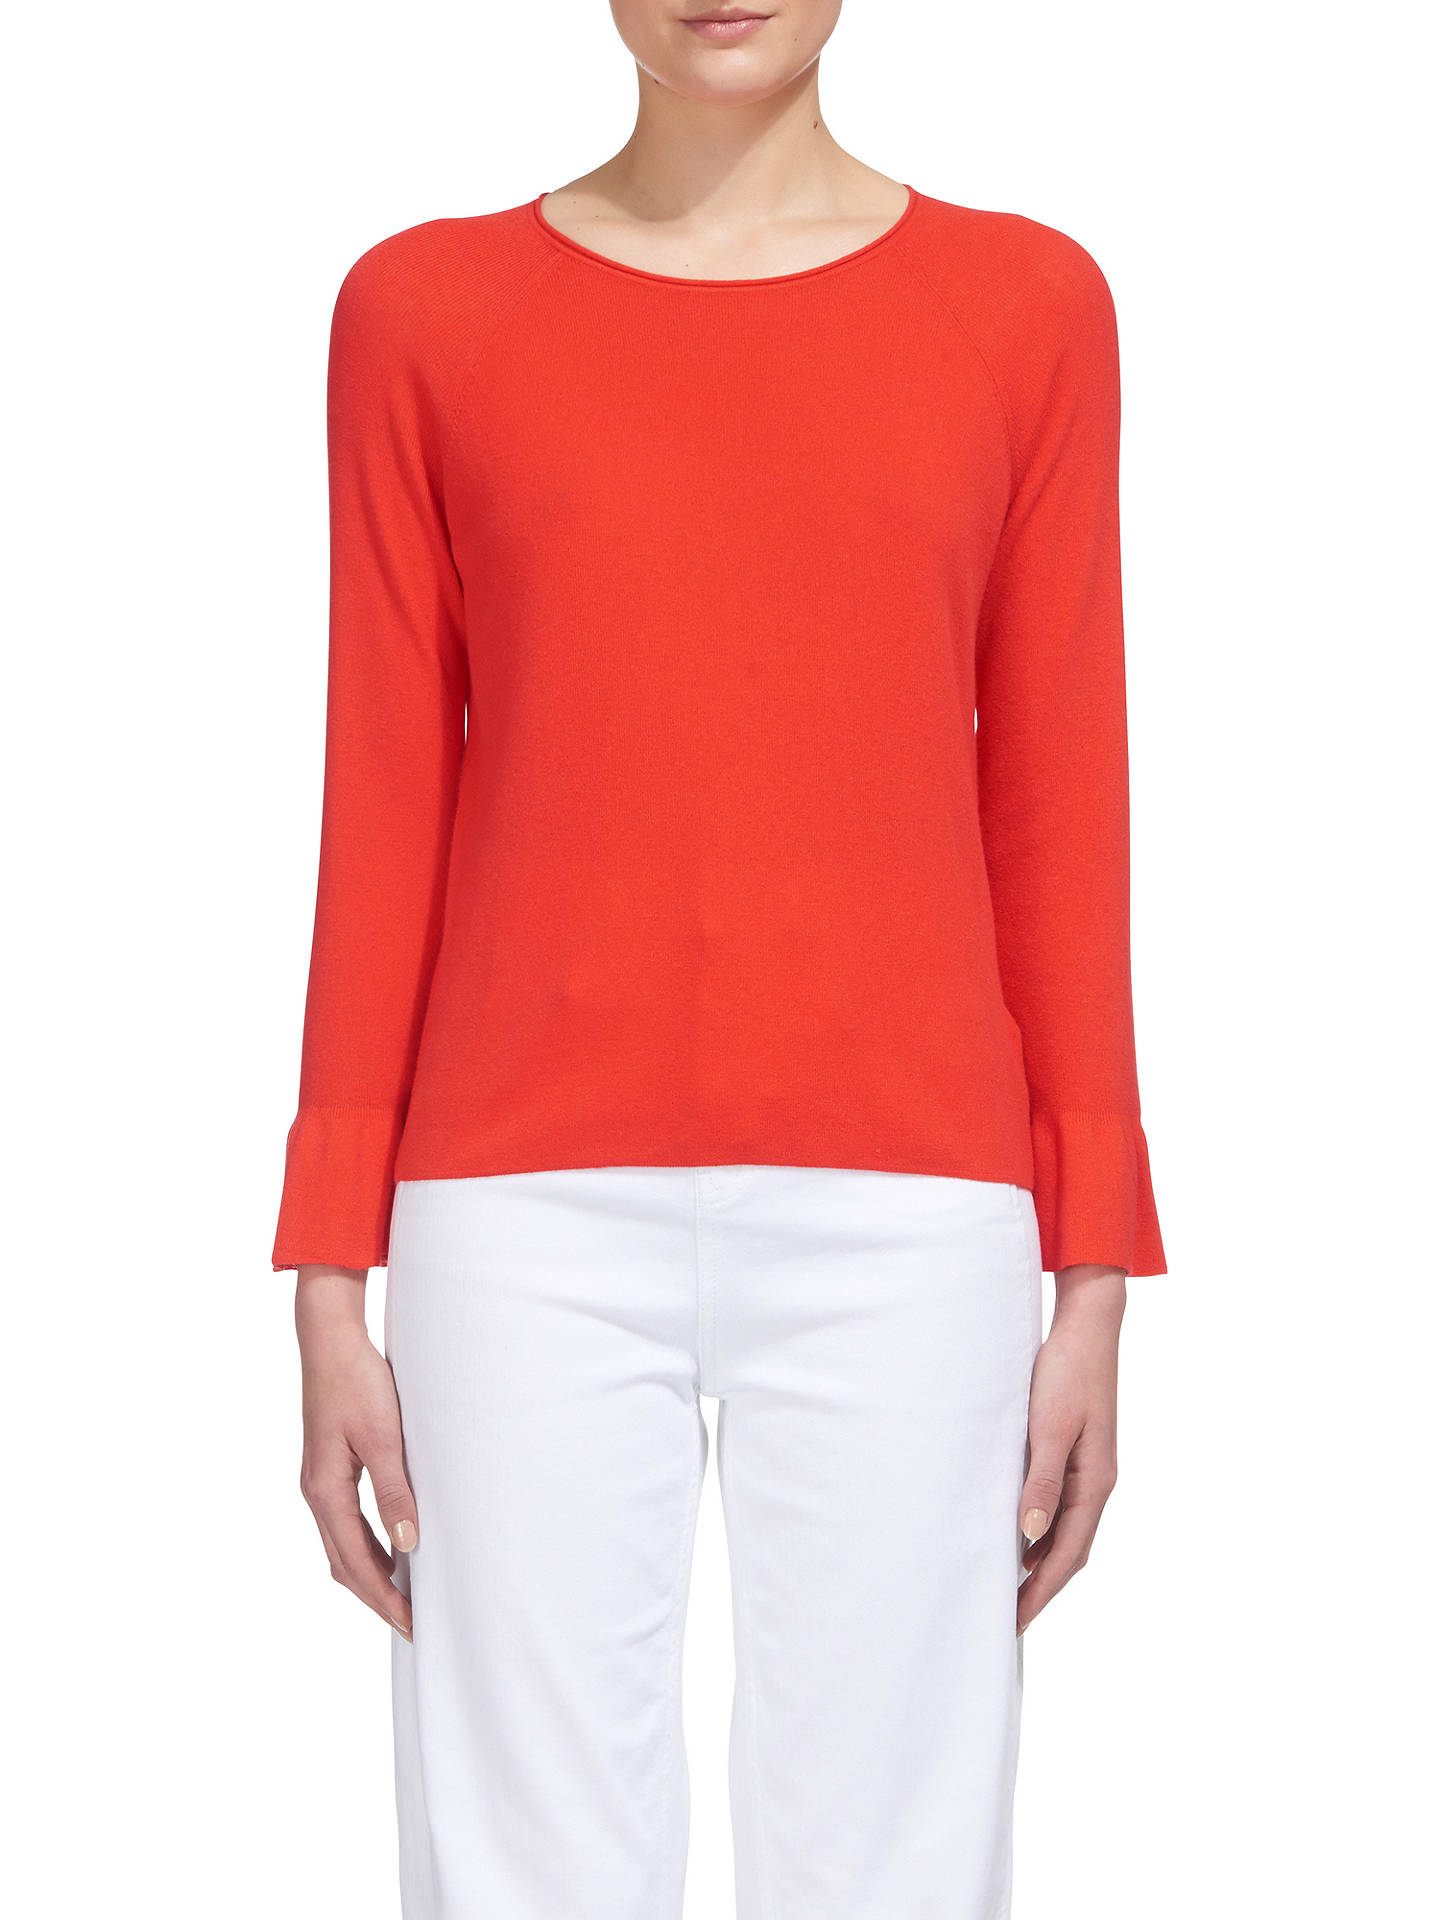 BuyWhistles Frill Wide Sleeve Top, Coral, XS Online at johnlewis.com